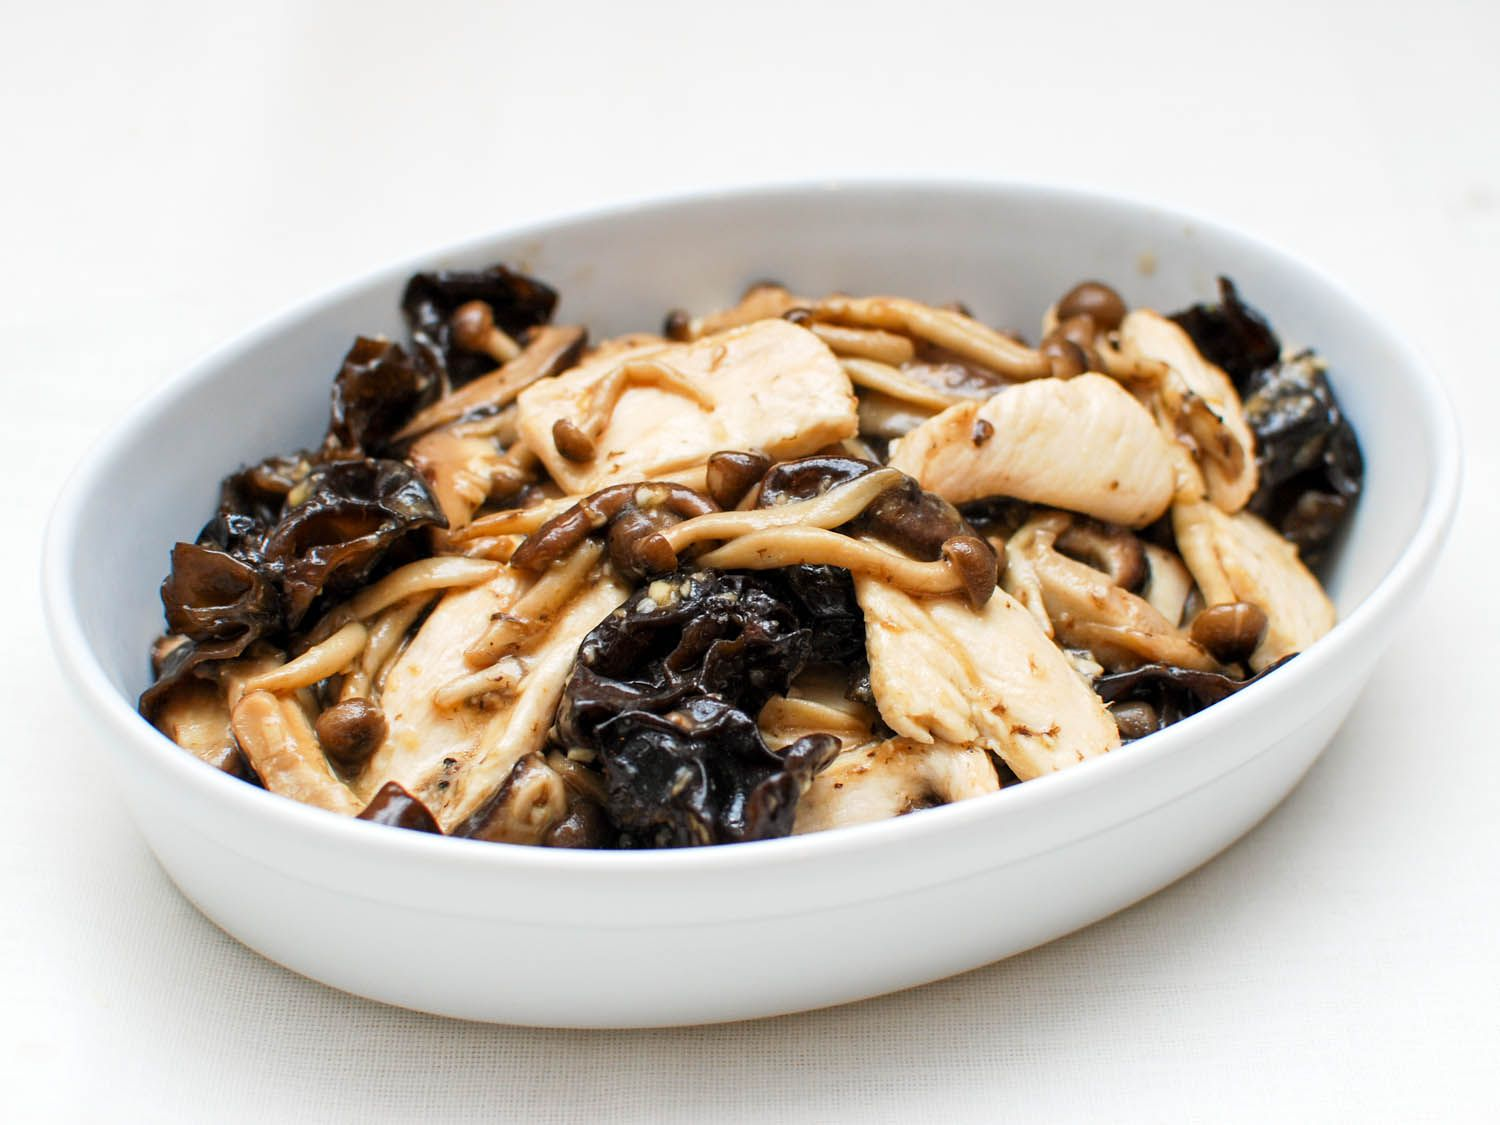 20140714-chicken-with-mushrooms-and-oyster-sauce-shao-zhong-9.jpg